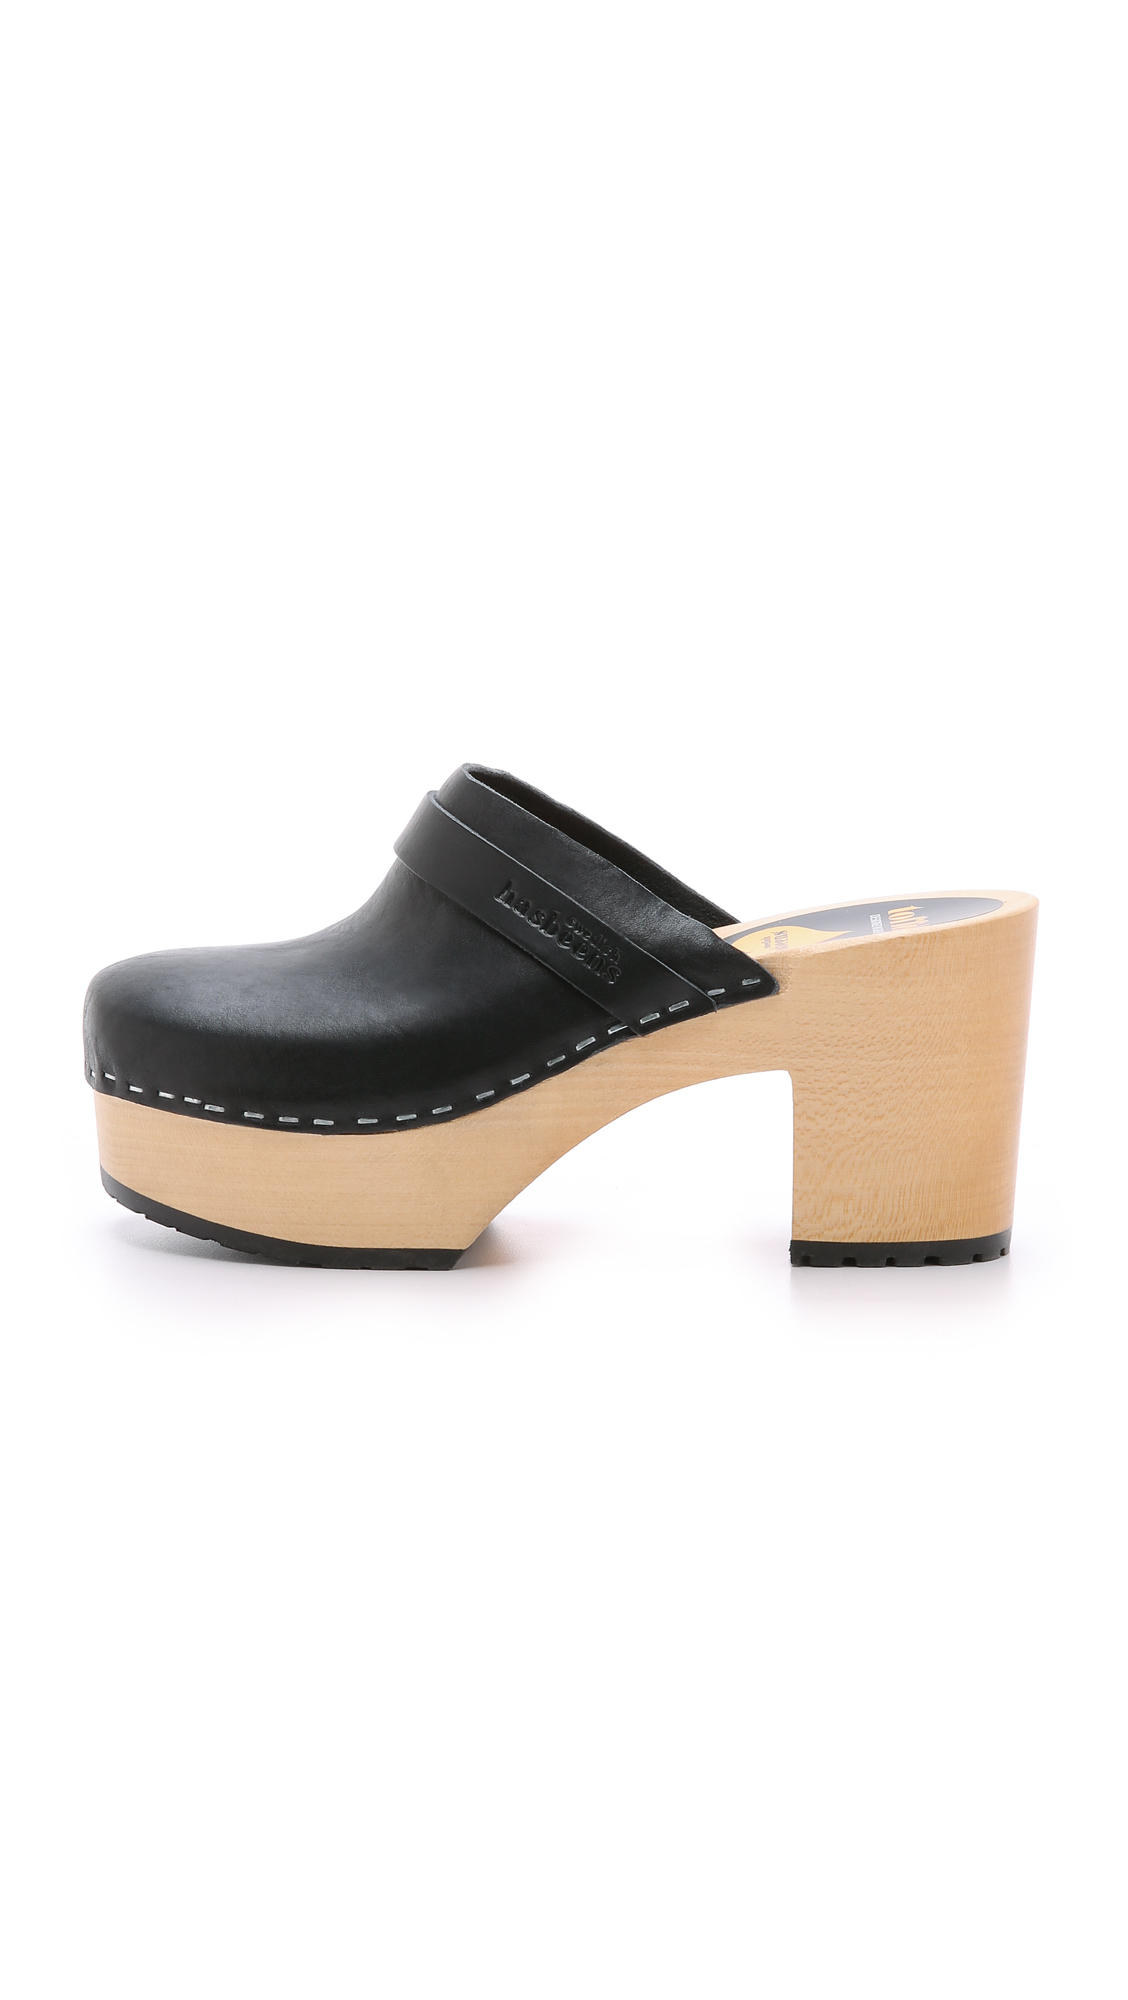 Today's micro-sales roundup is a whole slew of Swedish Hasbeens clogs that are on sale for up to 70 percent off.